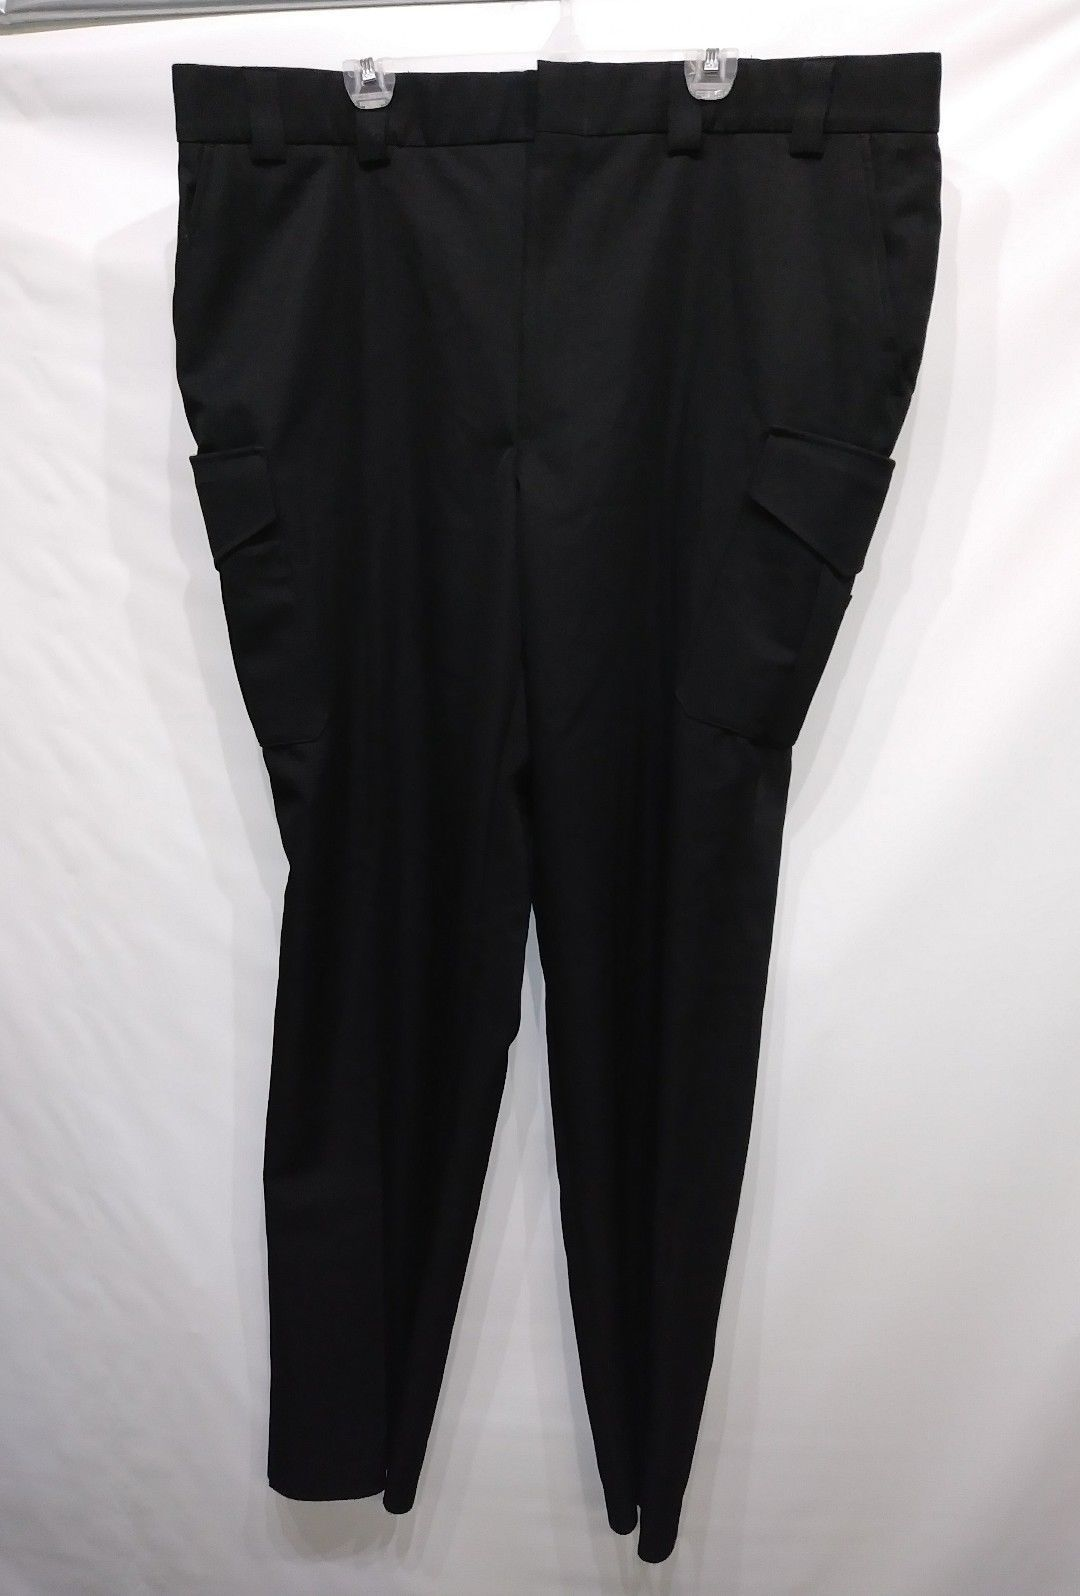 BLAUER SIDE POCKET POLYESTER TROUSERS BLACK SIZE 48 X 37 STYLE 8655 BRAND NEW